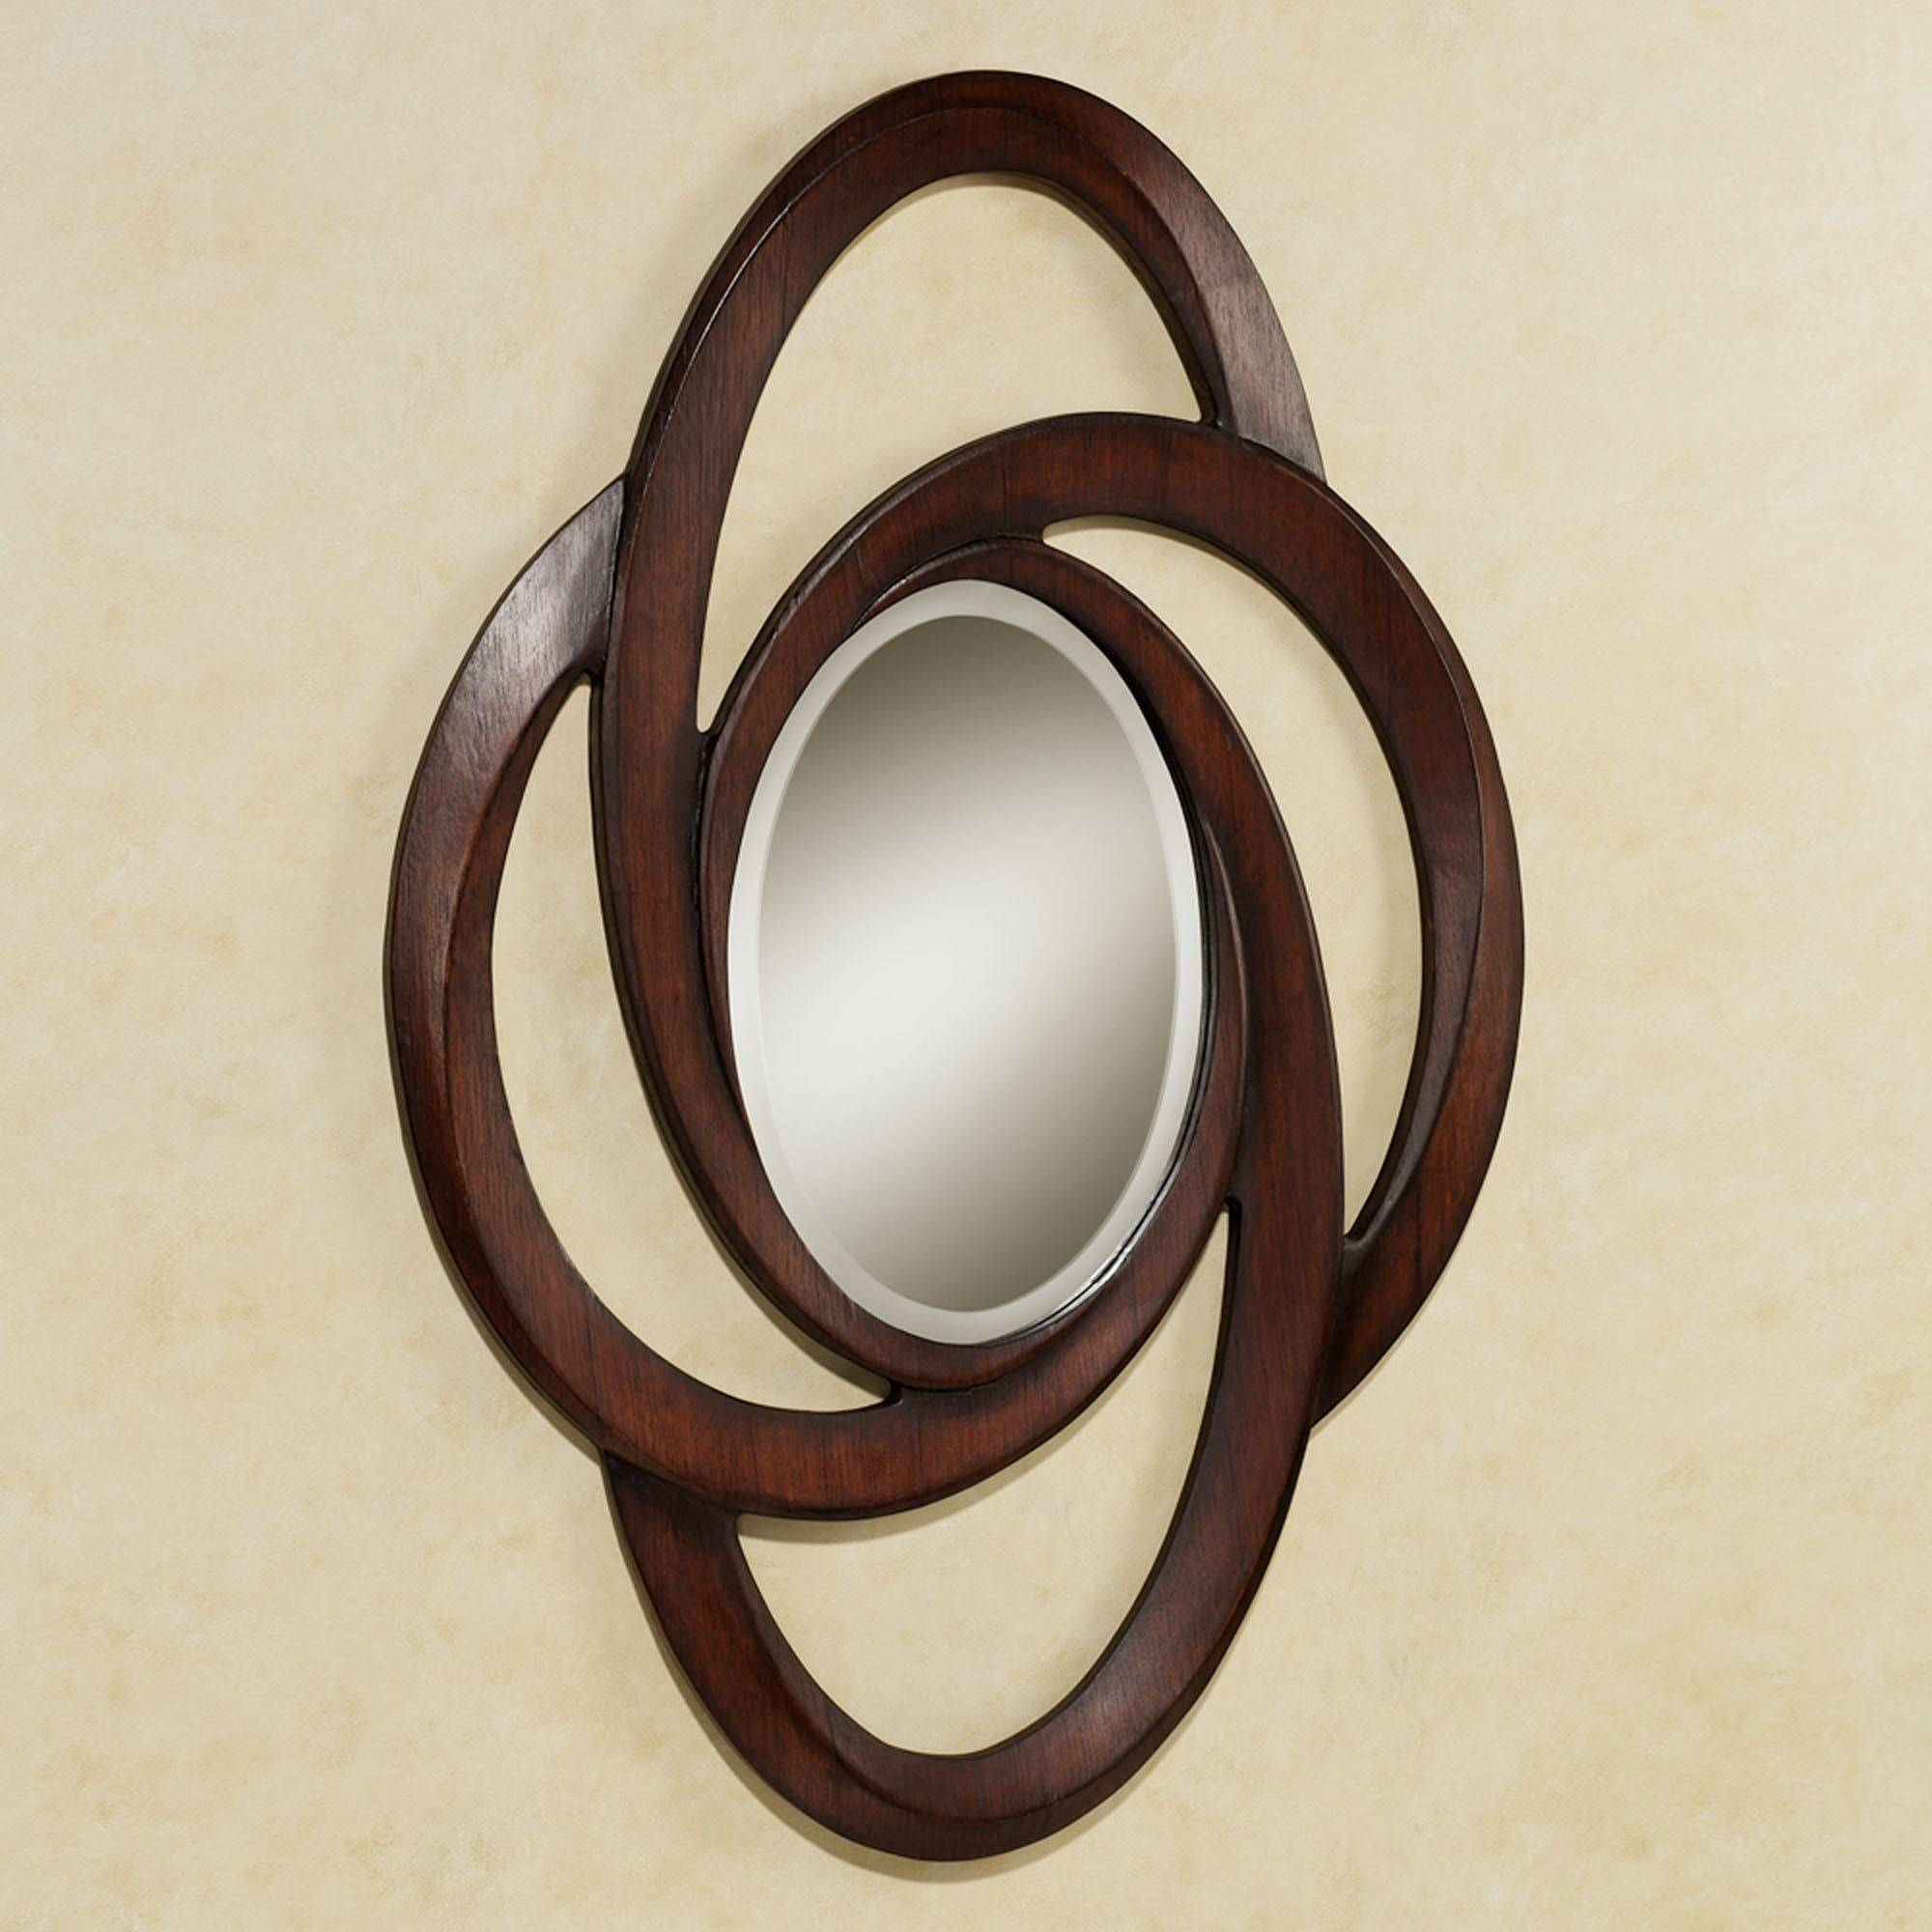 Oval Wall Mirrors with regard to Oval Wall Mirrors (Image 19 of 25)